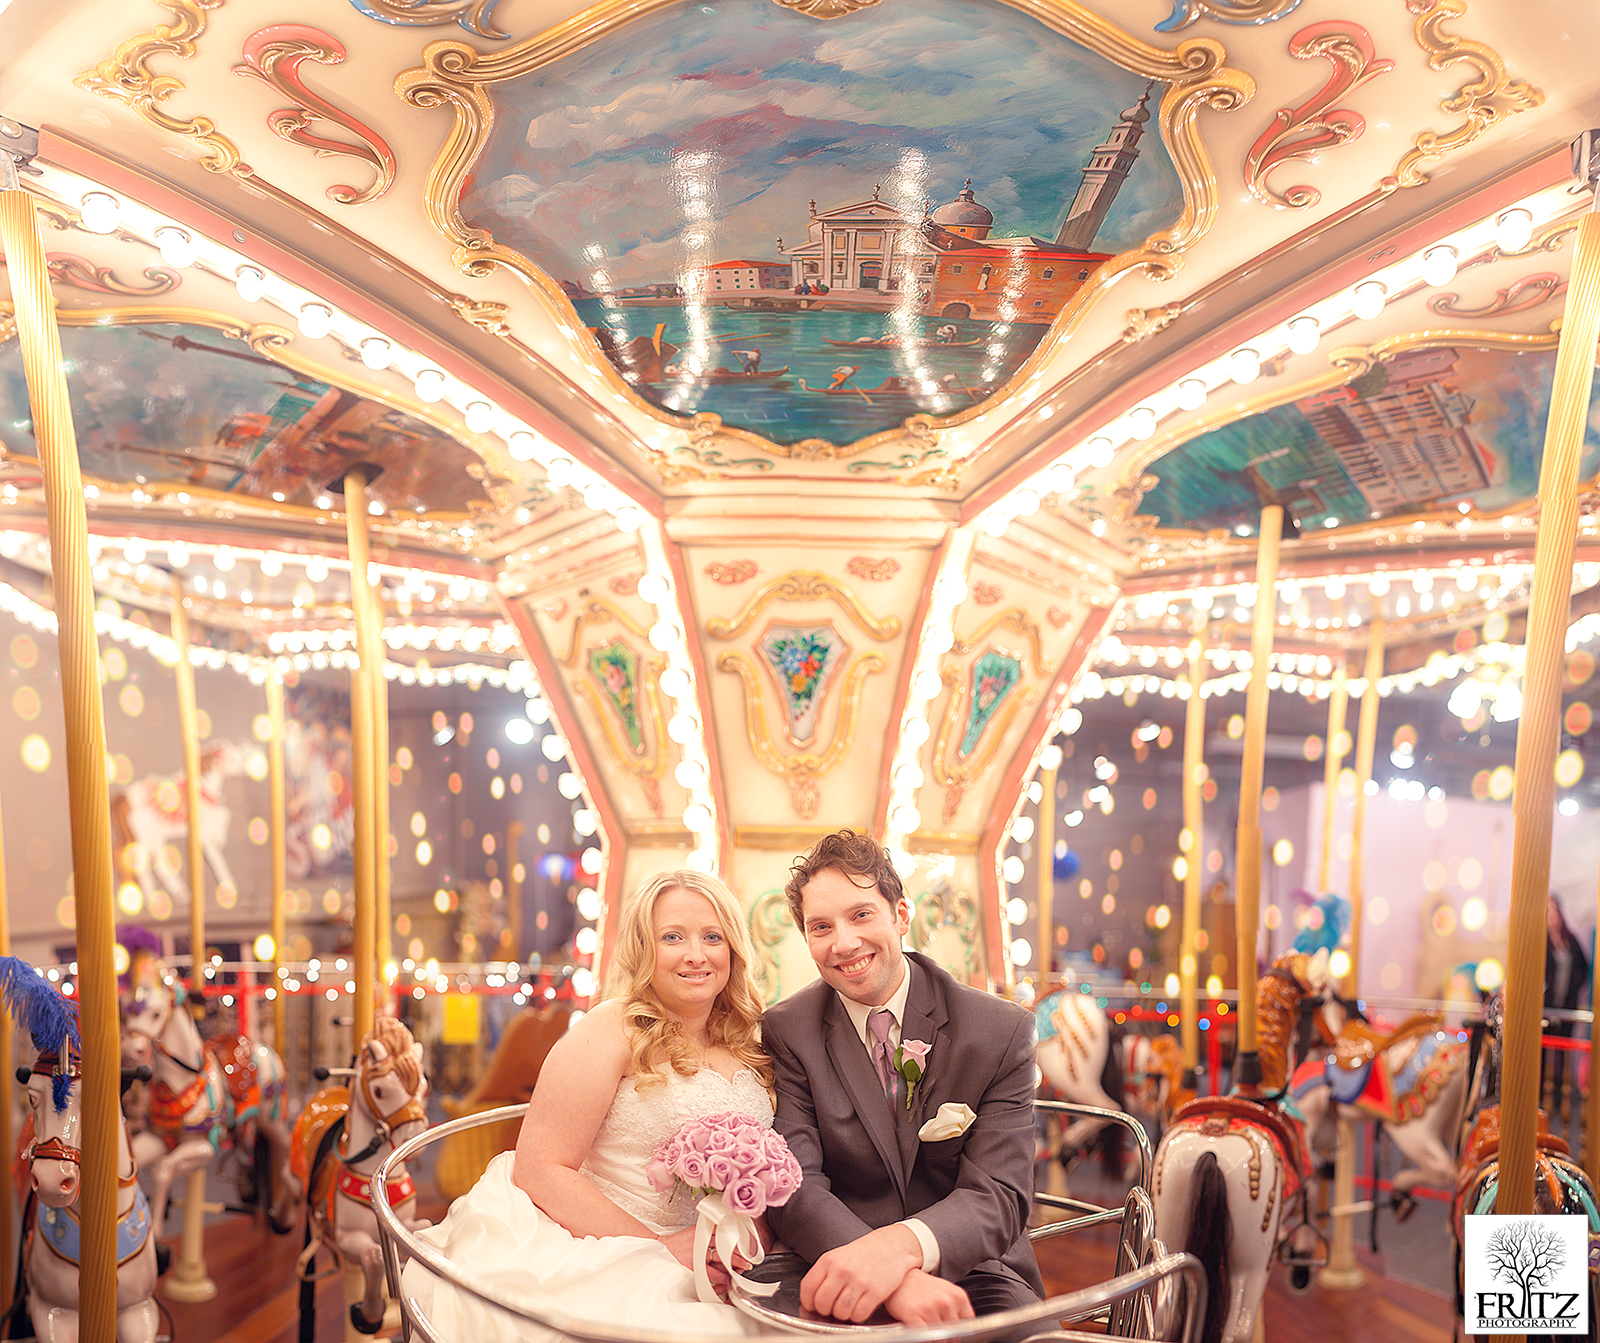 Photos on the Carousel